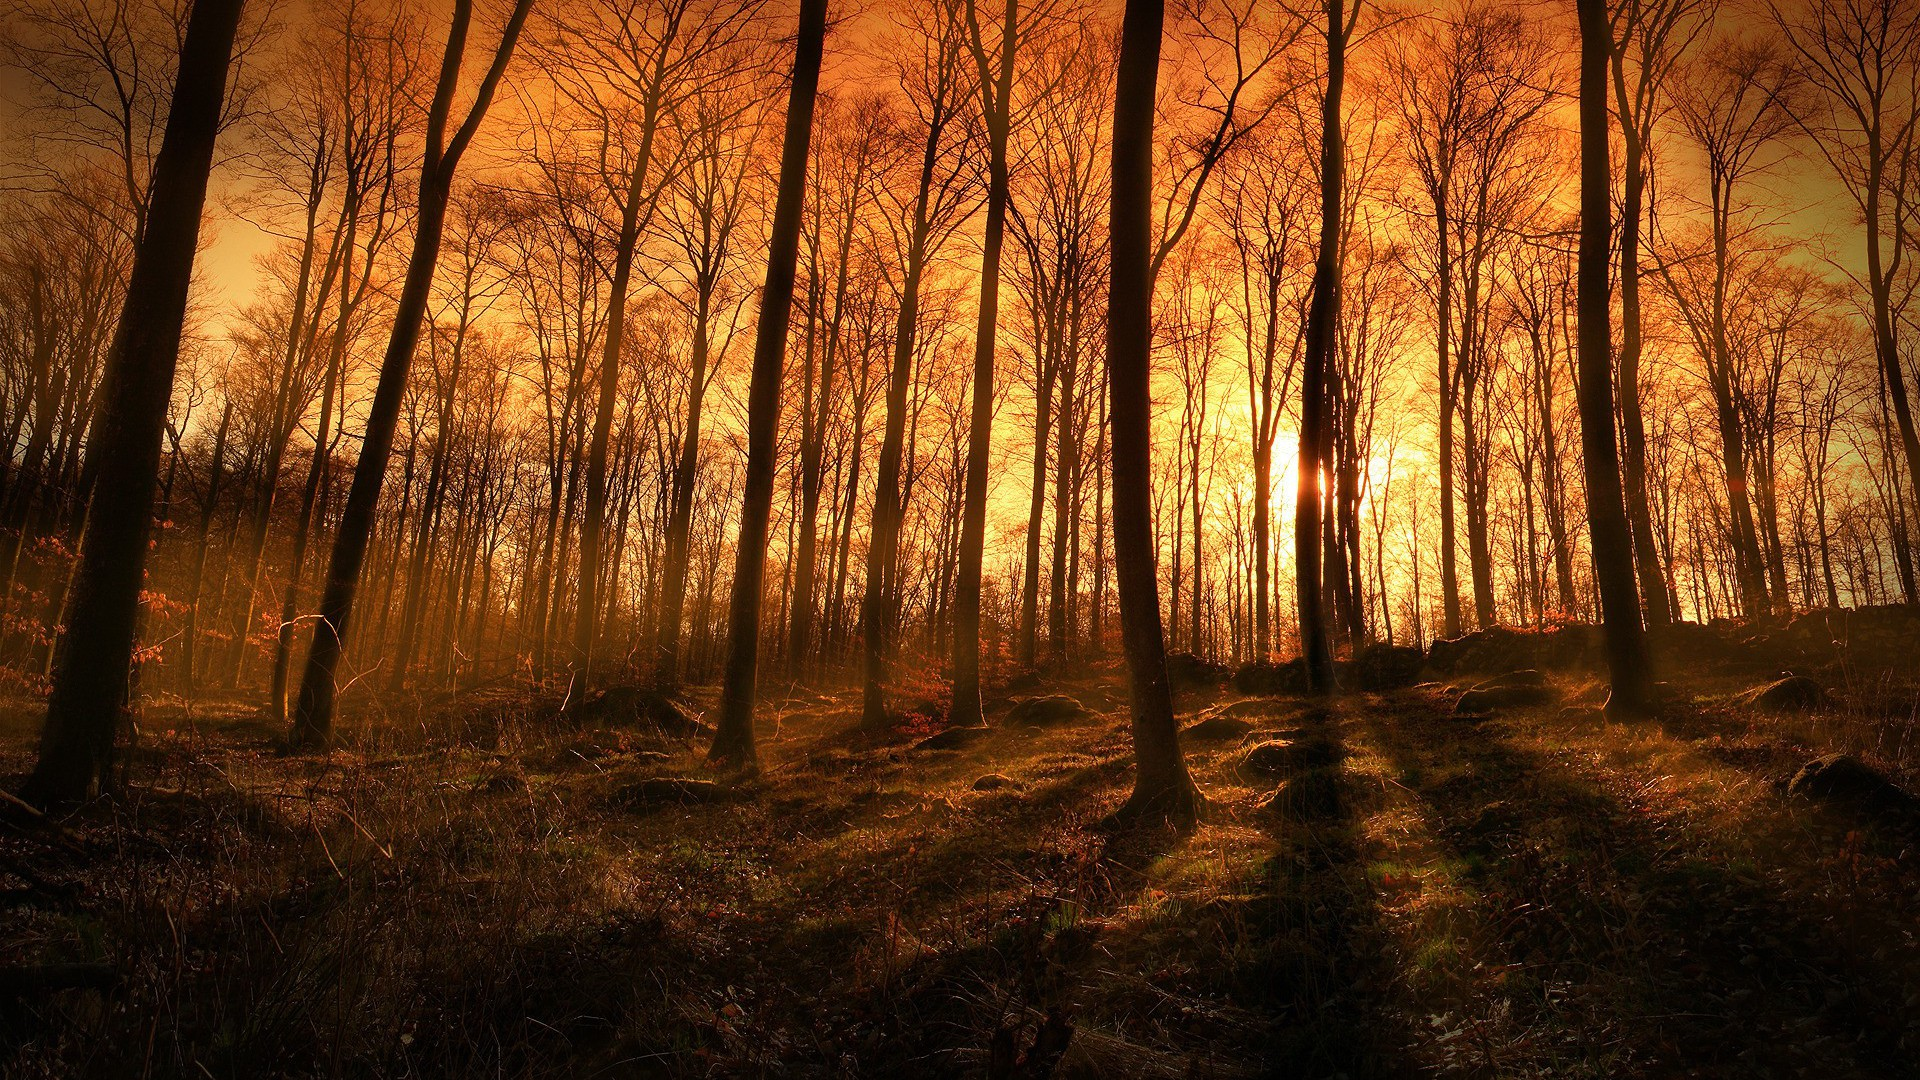 Fall Woodsy Pc Wallpaper Sunset Sunbeams Coming Through The Forest Wallpaper